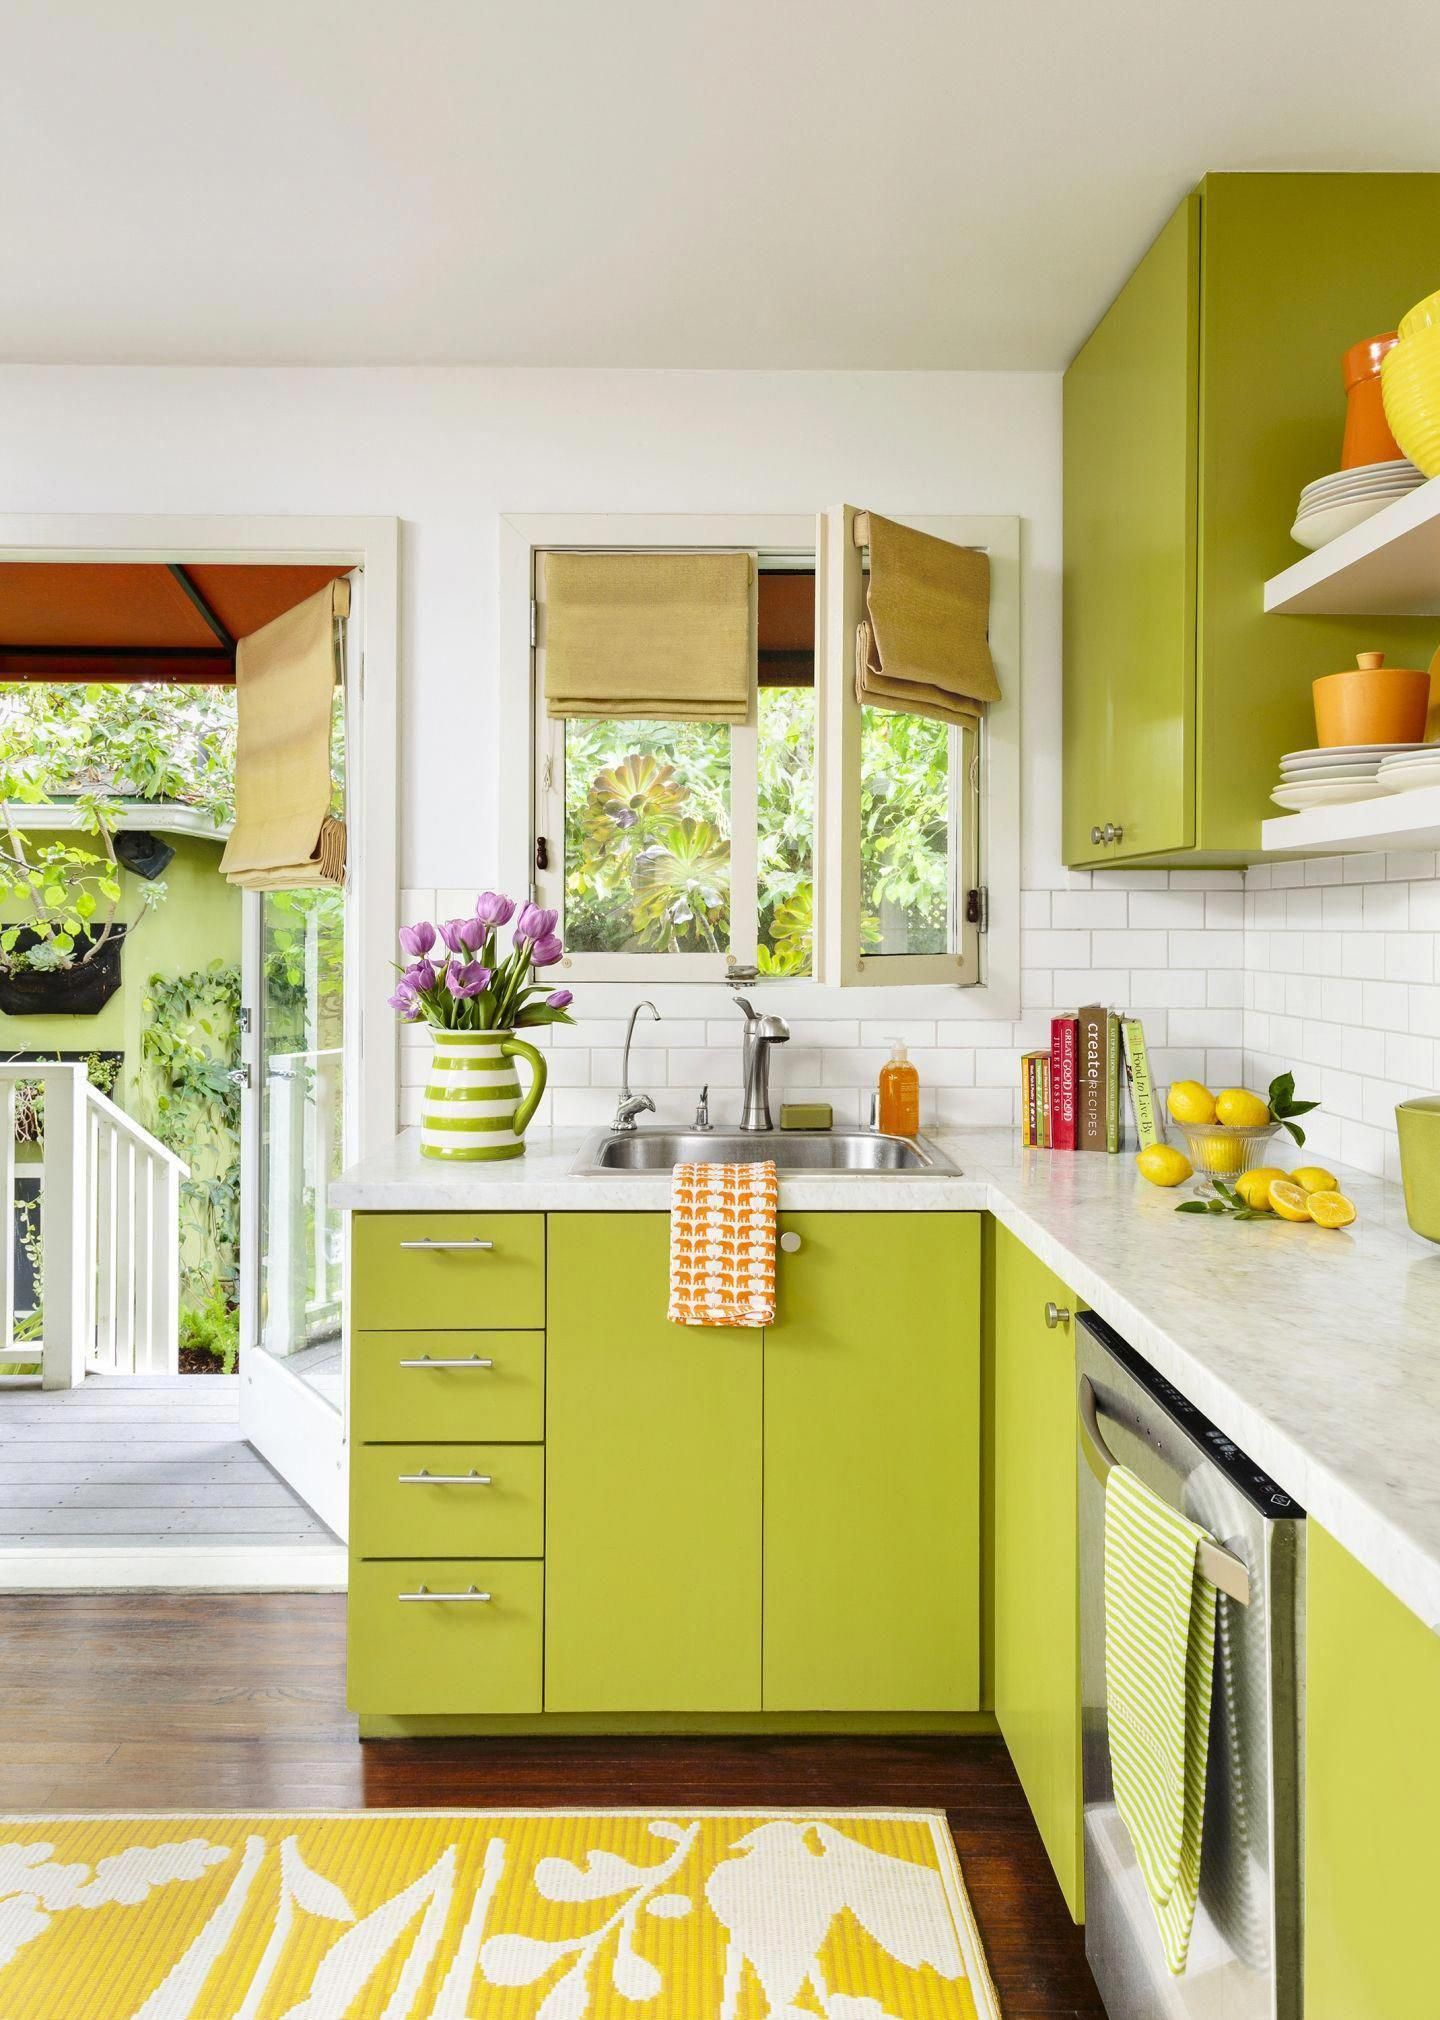 bungalow remodel ideas bungalowremodeluk kitchen cabinets color combination kitchen interior on kitchen interior green id=90522